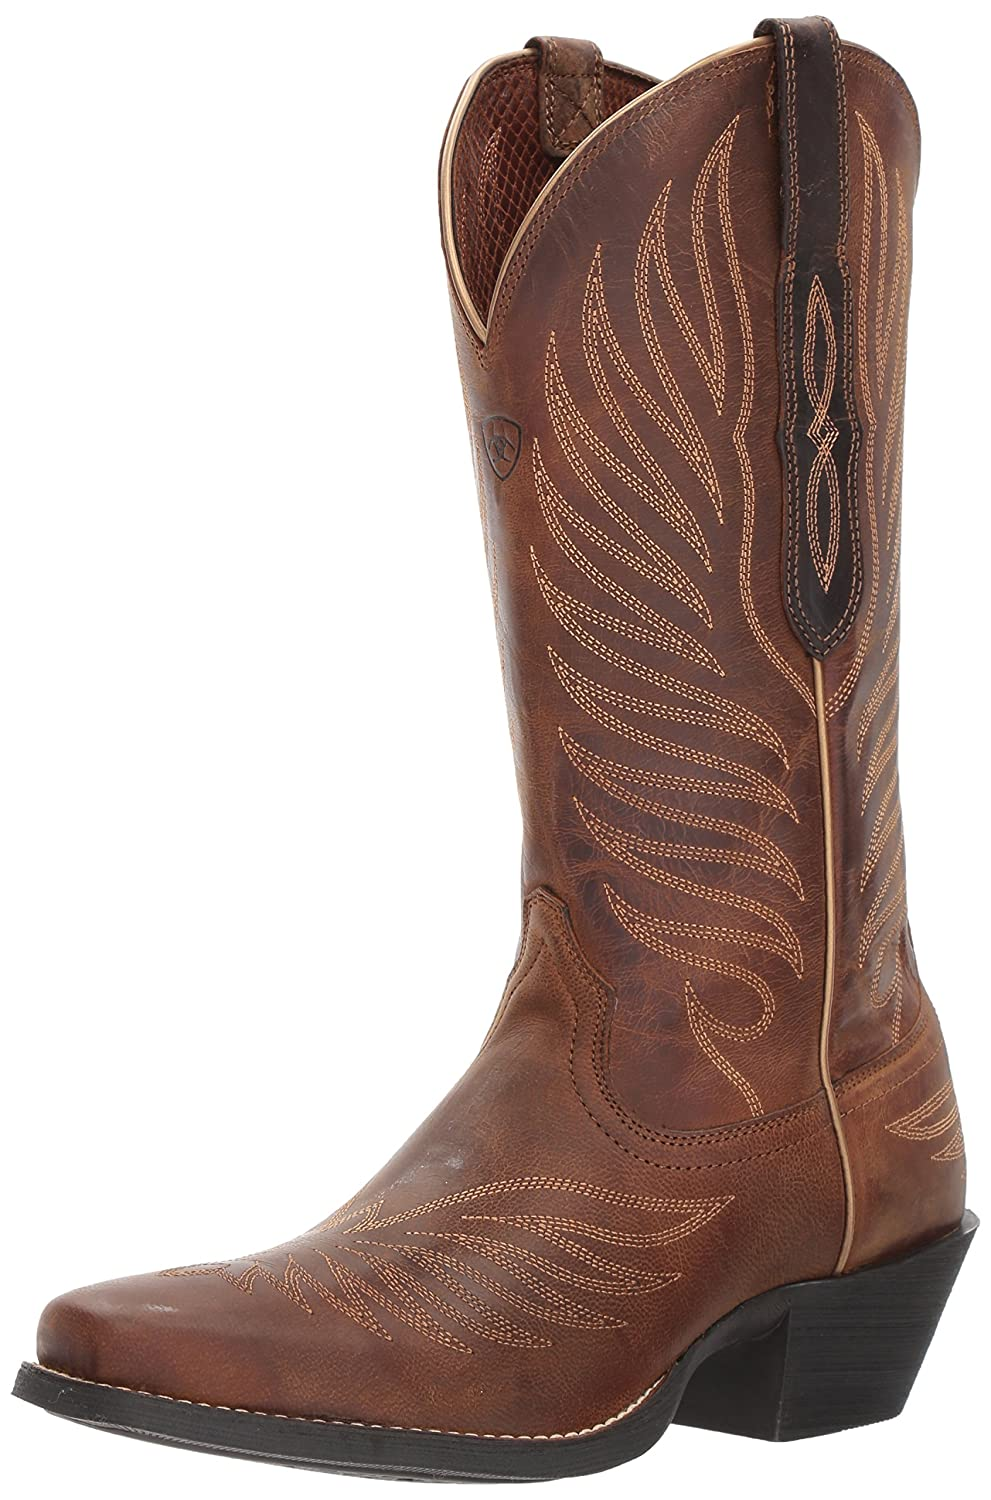 Ariat レディース Round Up Phoenix Rodeo Tan 10 B(M) US 10 B(M) USRodeo Tan B01N159Y6O